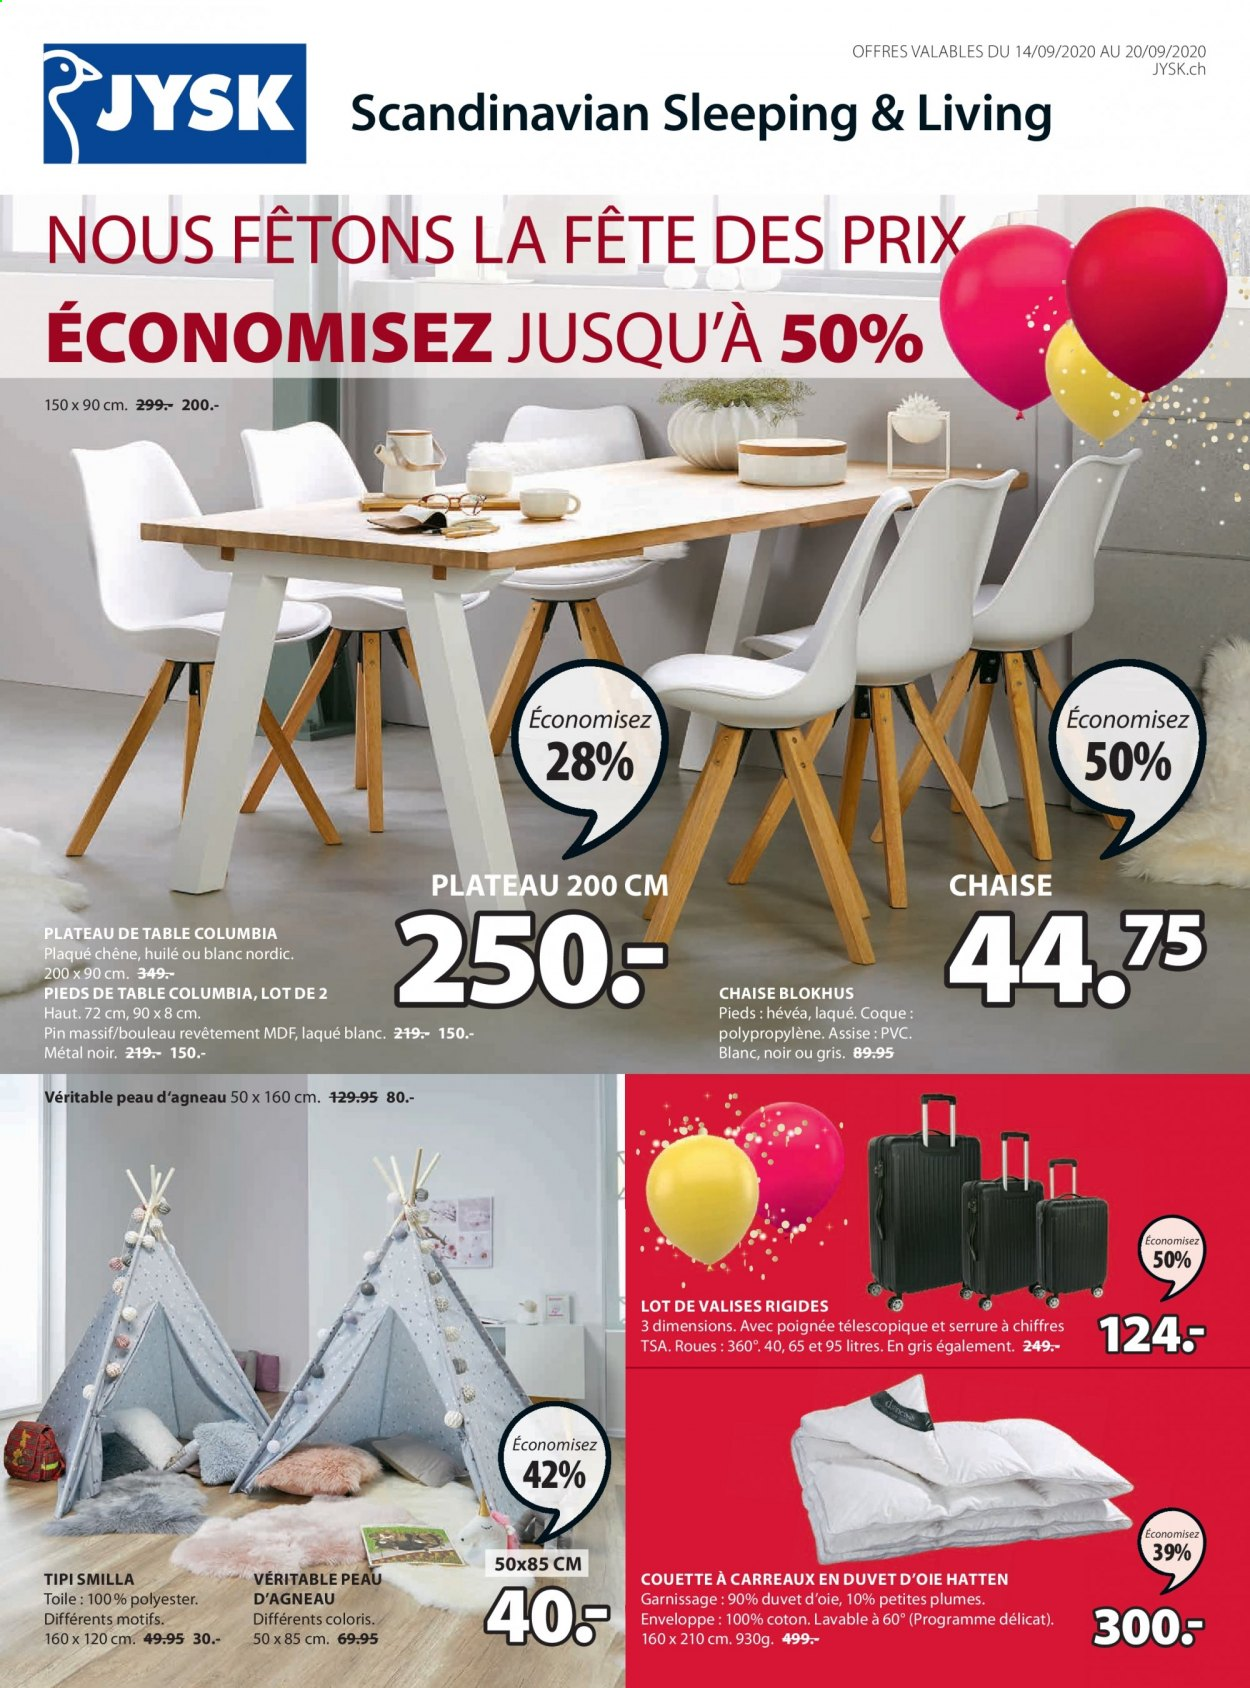 Prospekte JYSK - 14.9.2020 - 20.9.2020 - Produkte in Aktion - columbia, agneau, assise, coque, couette, enveloppe, huile, chaise, toile, oie, laque, teepee. Seite 1.